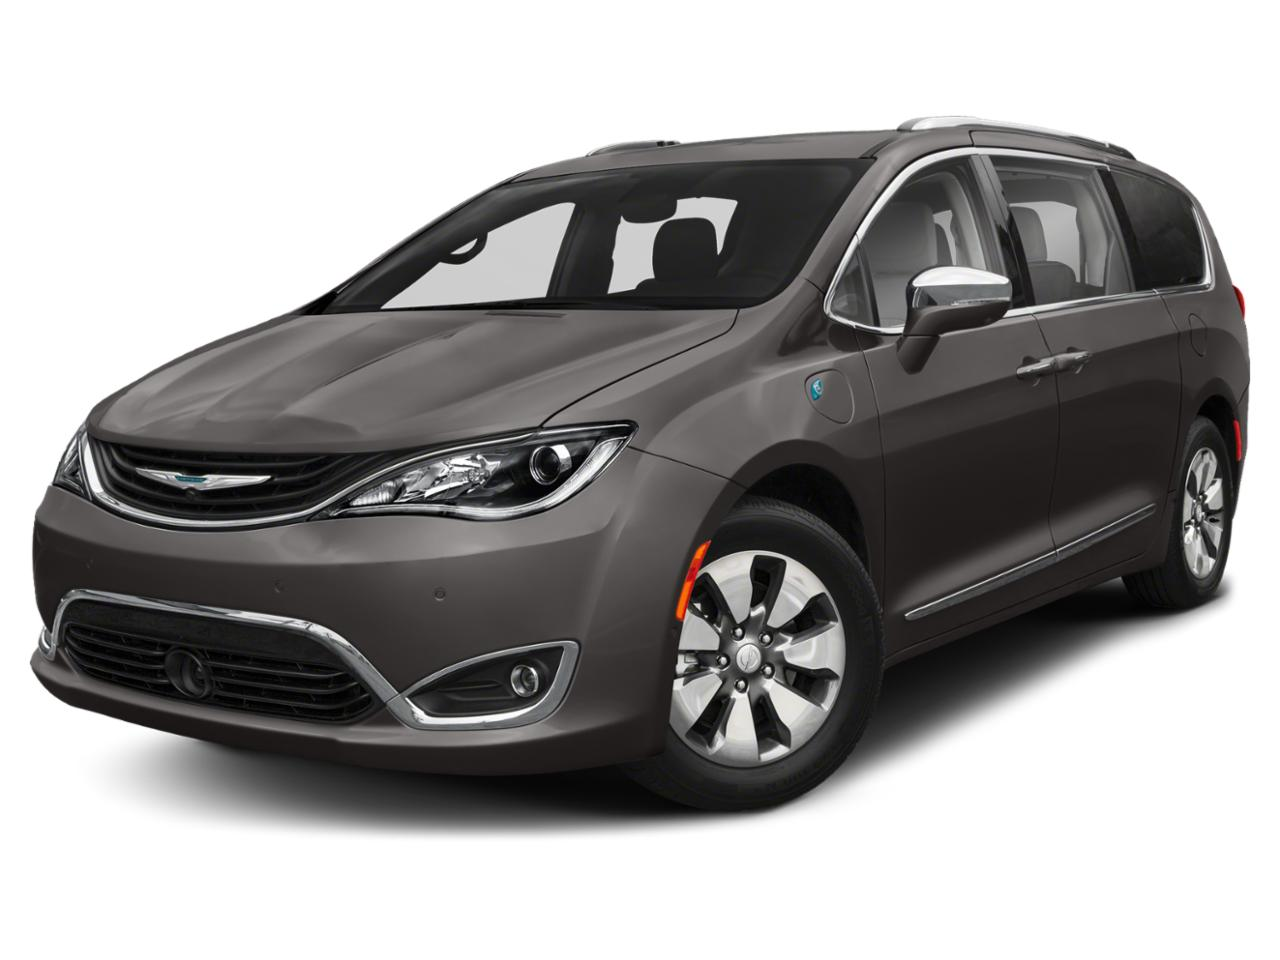 2017 Chrysler Pacifica Vehicle Photo in Austin, TX 78759